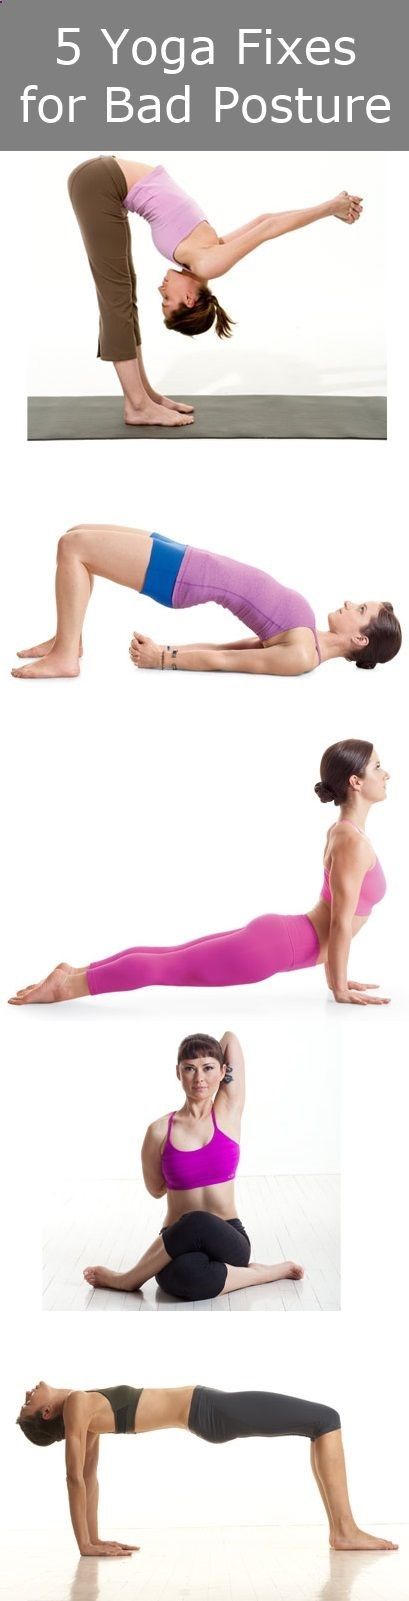 5 Yoga Fixes for Bad Posture - this is great for anyone after youve been sitting for awhile and need a good safe stretch!